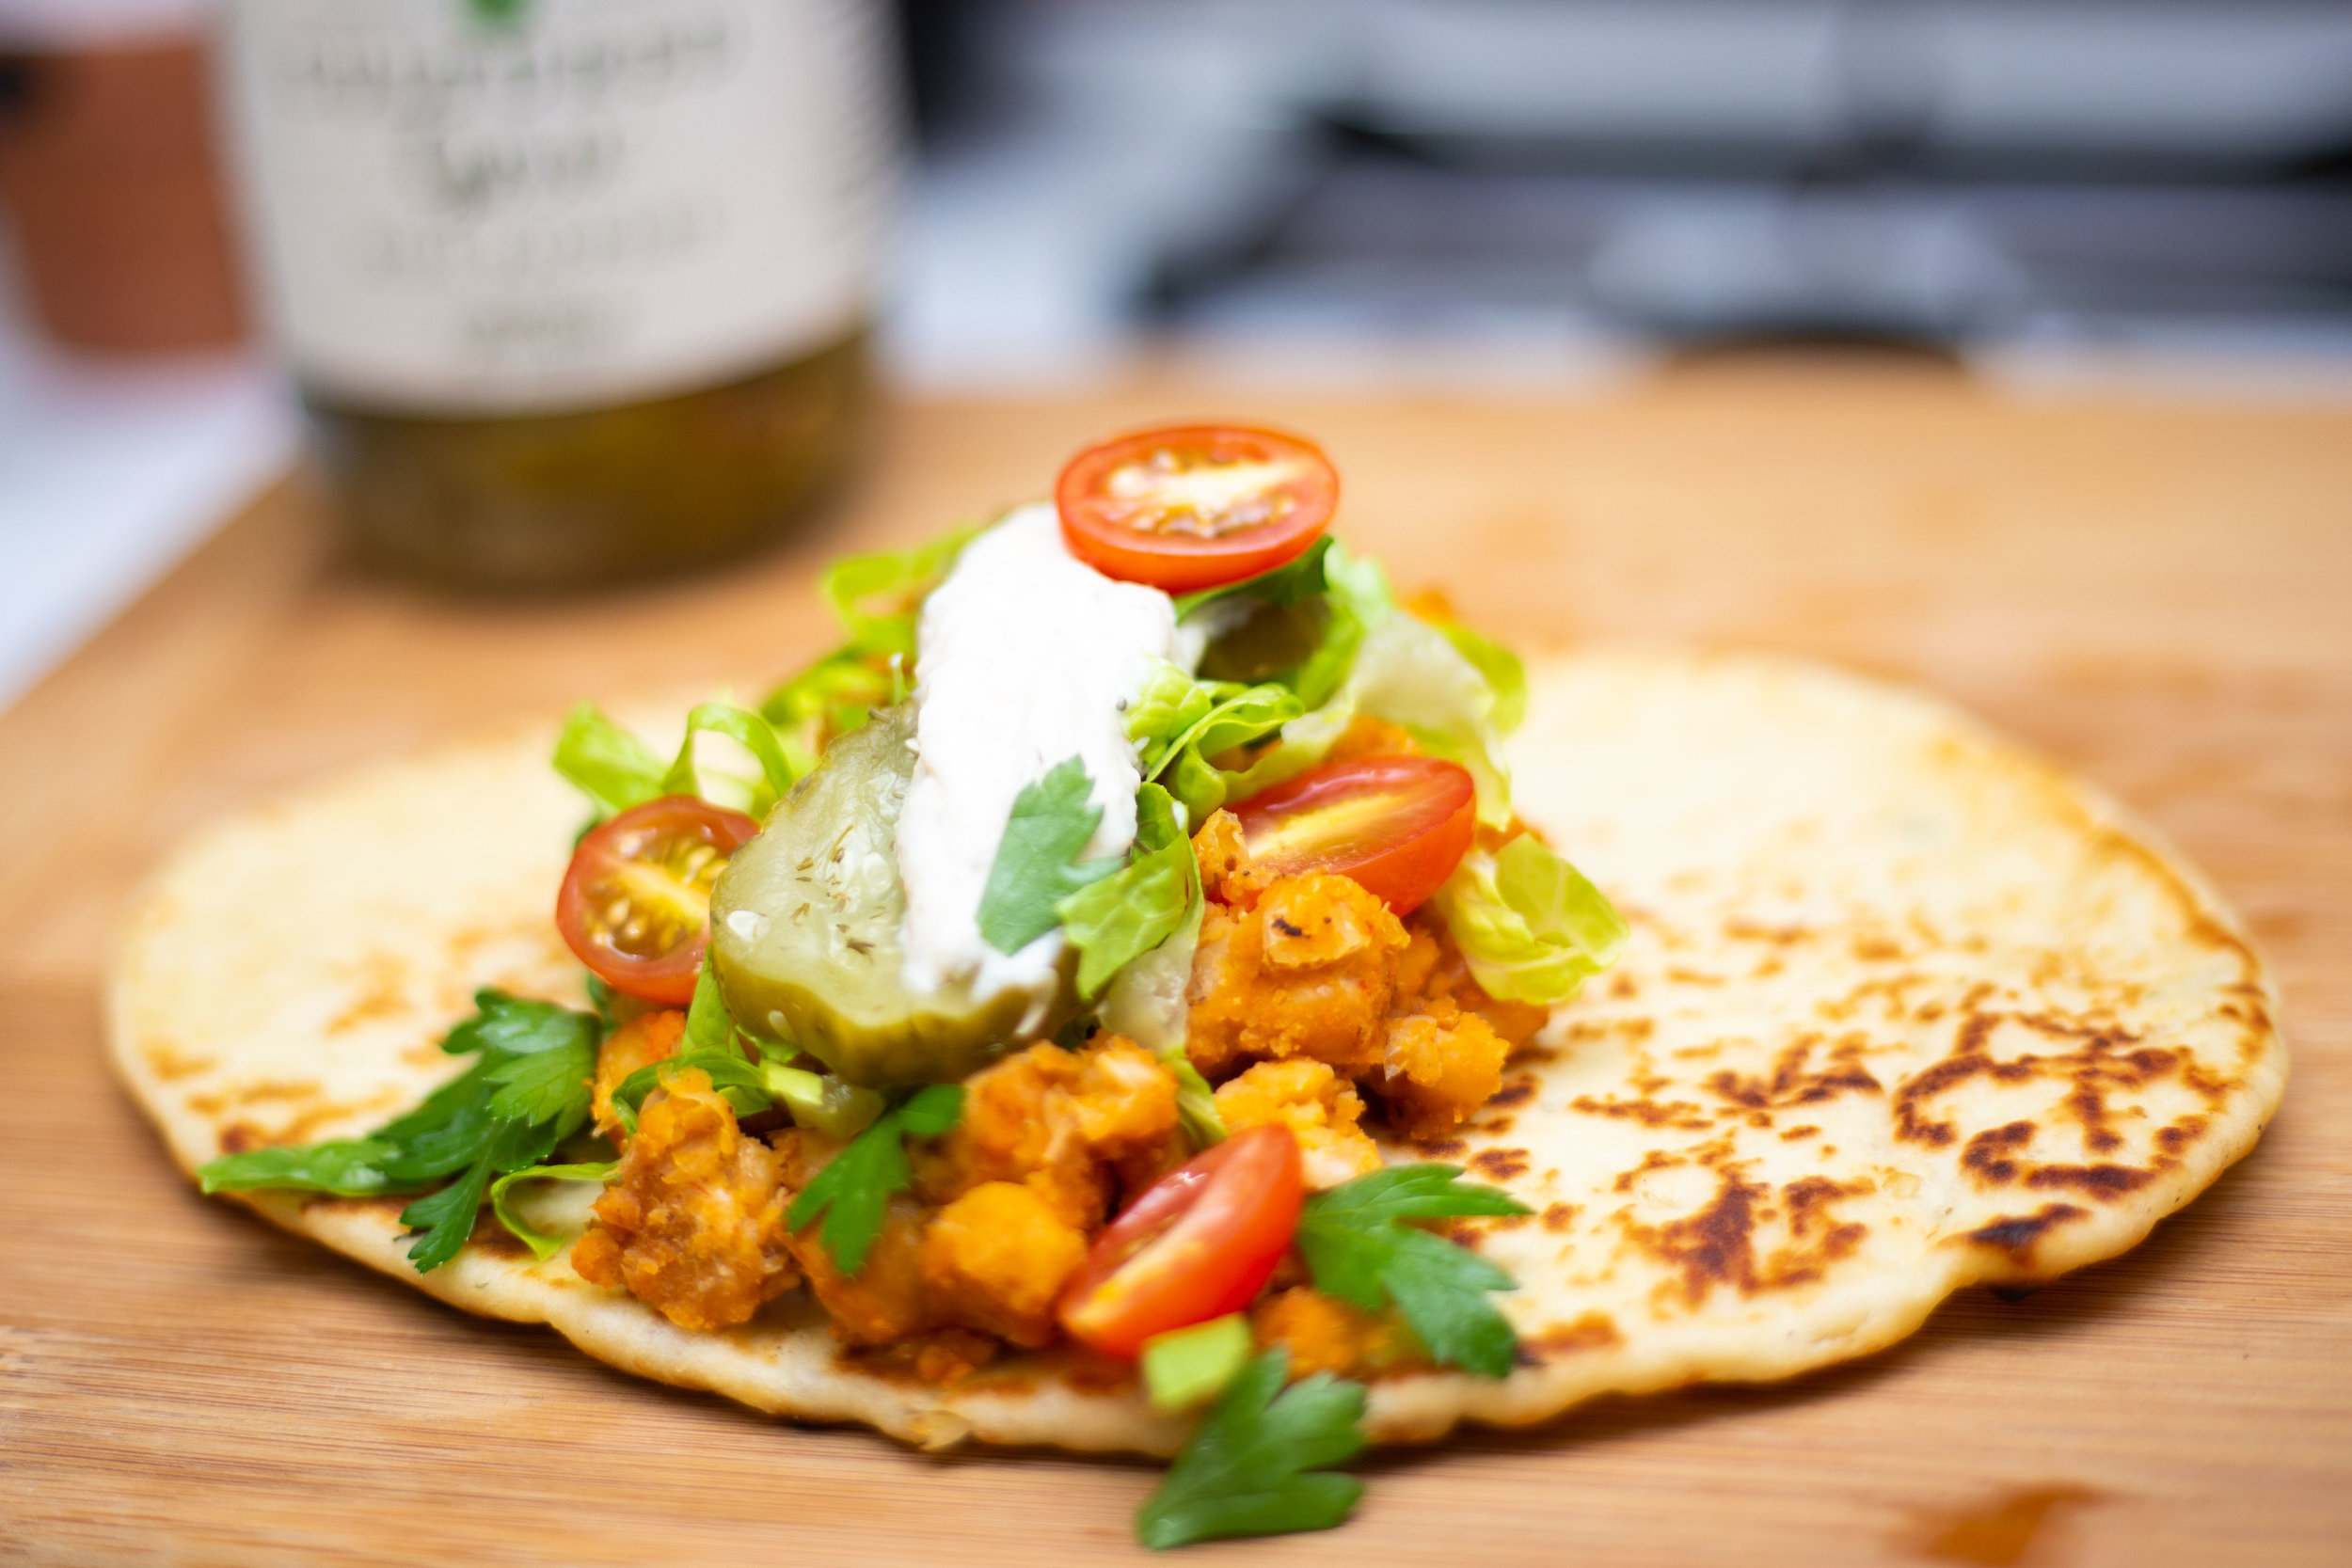 Buffalo Chickpea Wrap Recipe with Fermented Dill Pickles